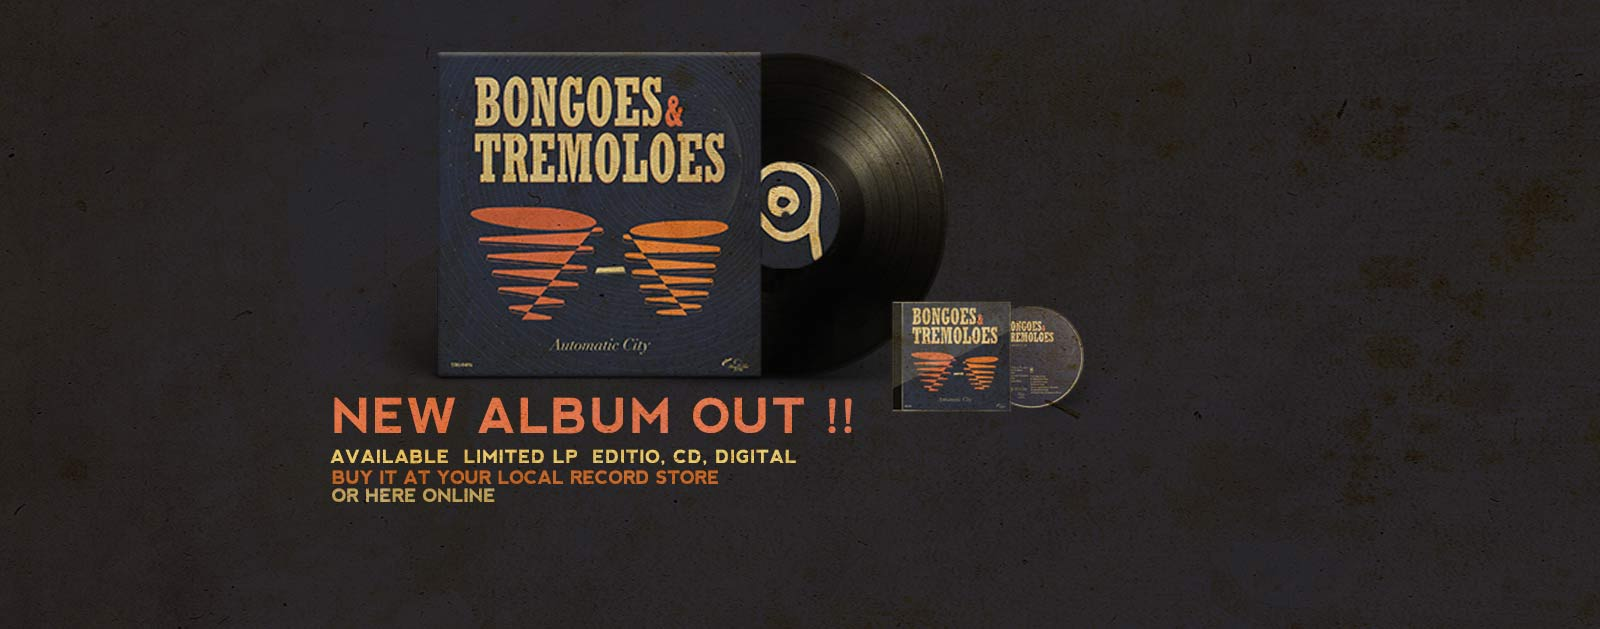 Automatic City new album Bongoes and tremoloes